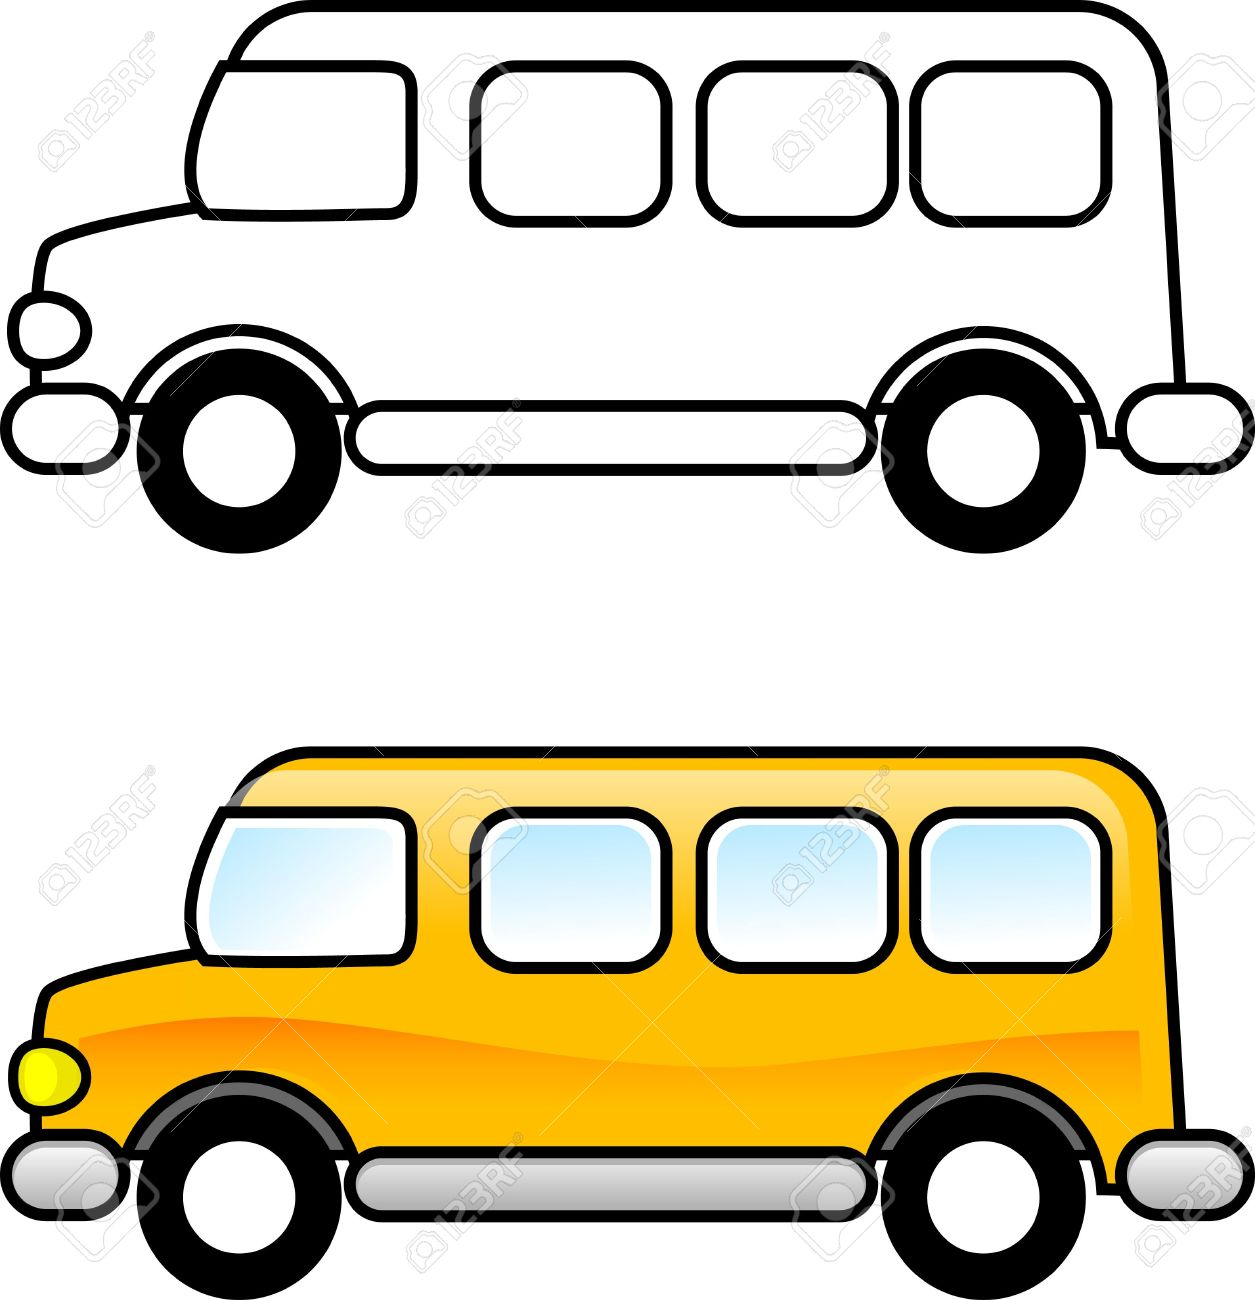 school bus printable coloring page for children or you can